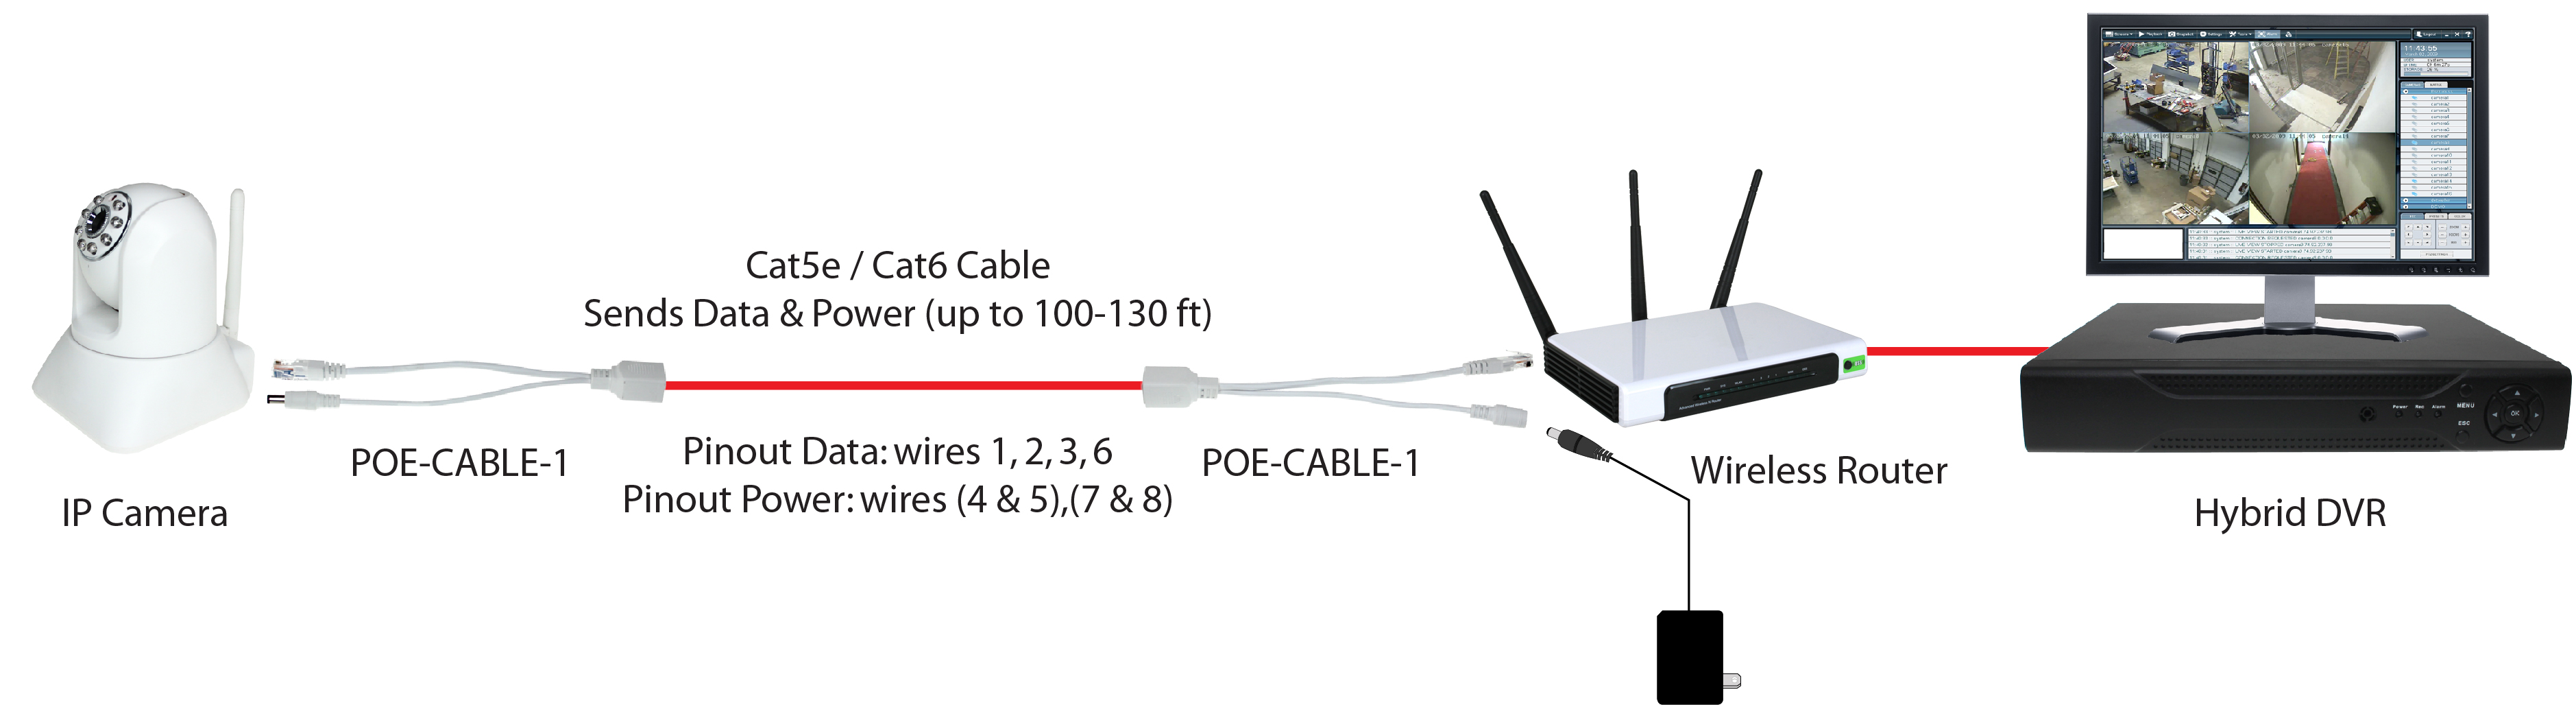 6 Inch Power Over Ethernet  Poe  Cable - 2pcs  Set